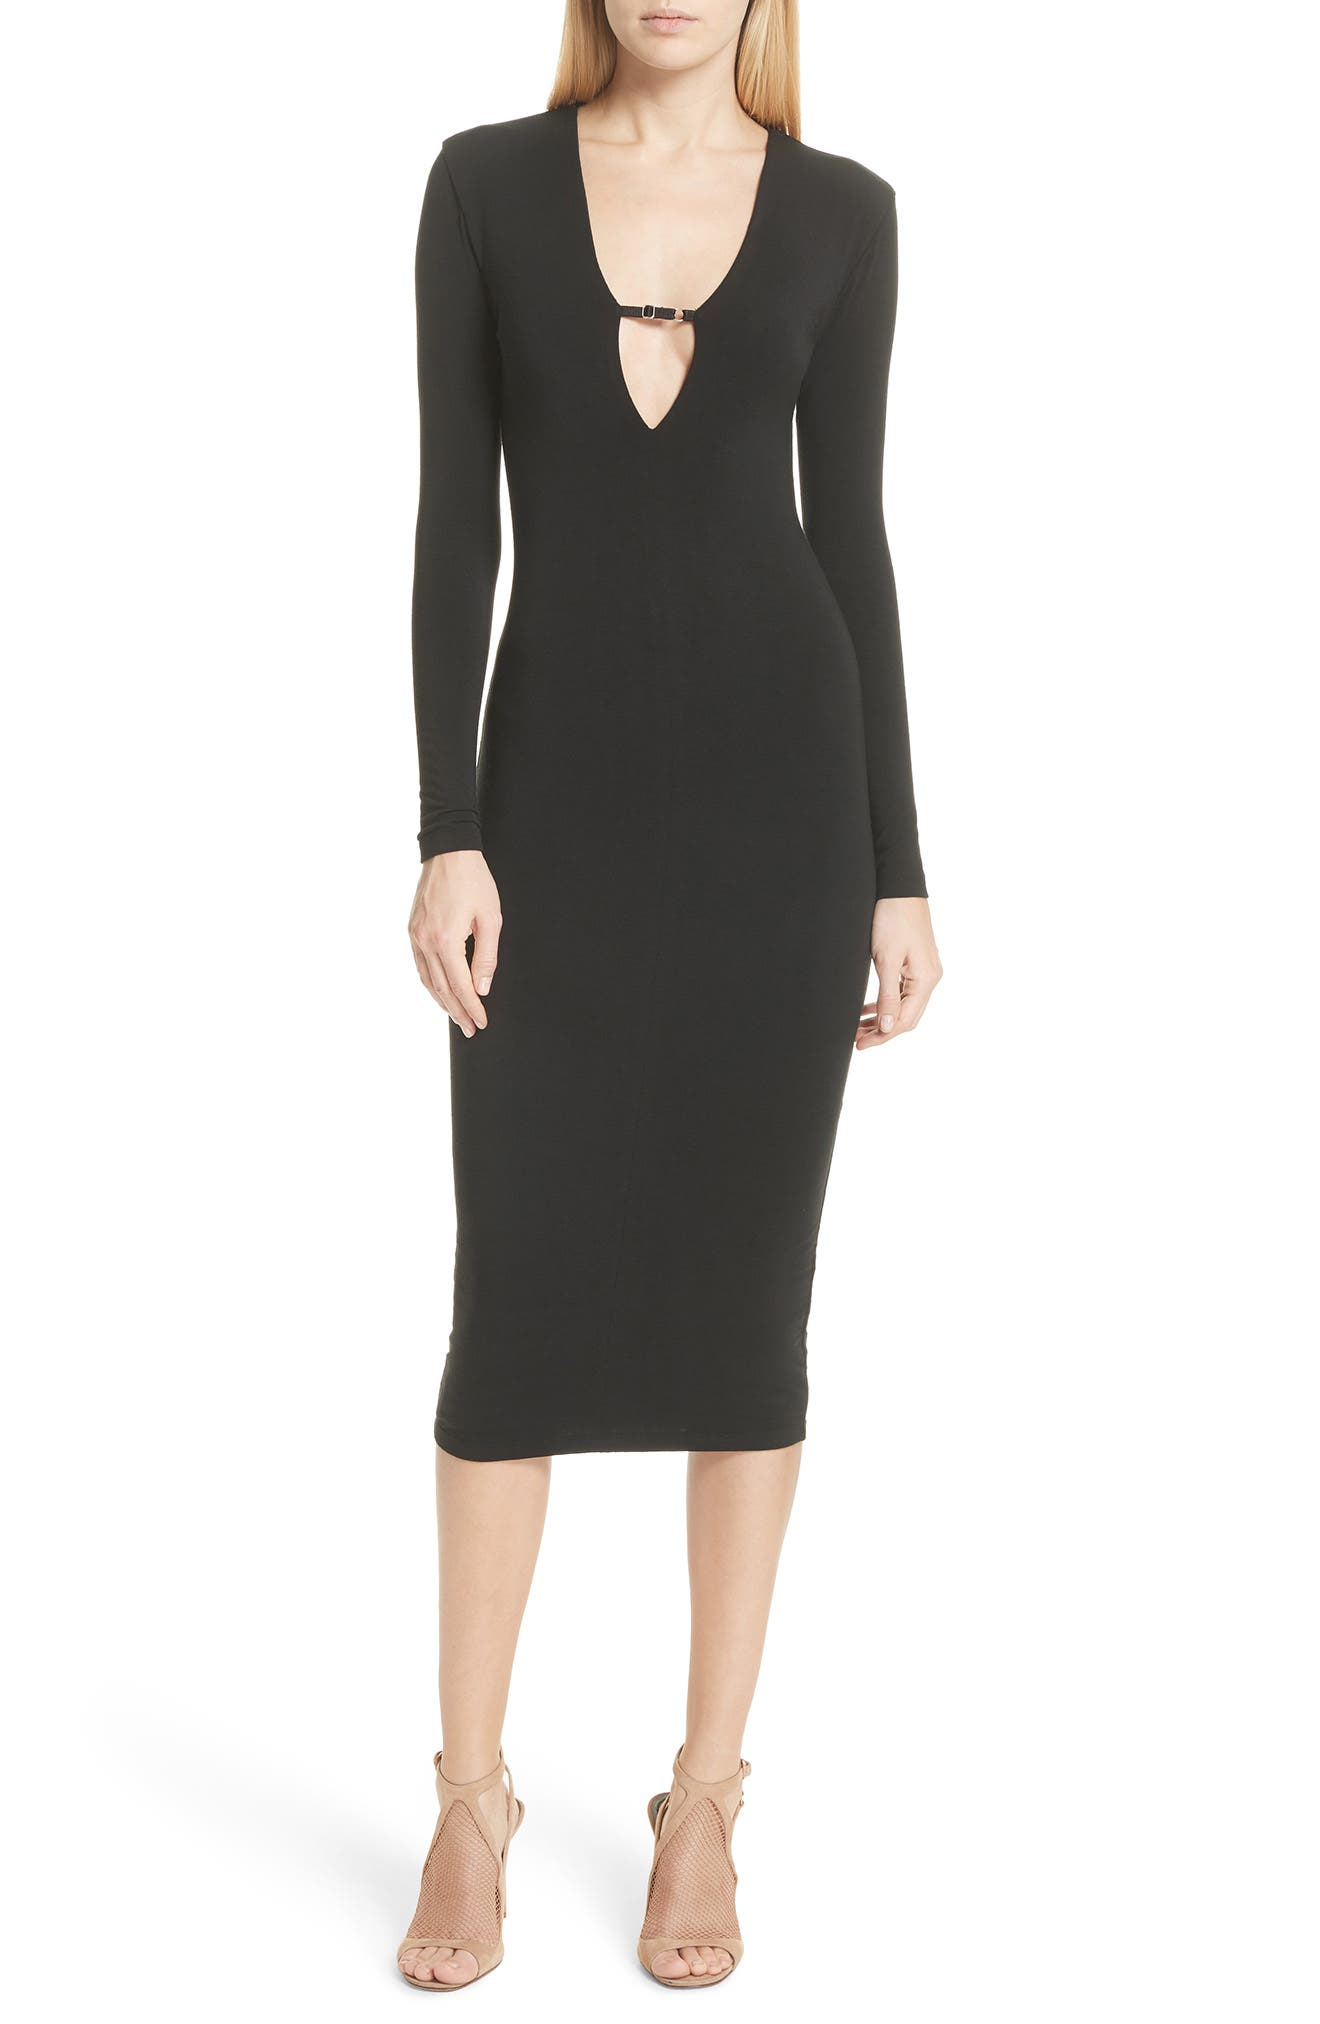 Alternate Image 1 Selected - T by Alexander Wang Keyhole Neck Body-Con Dress